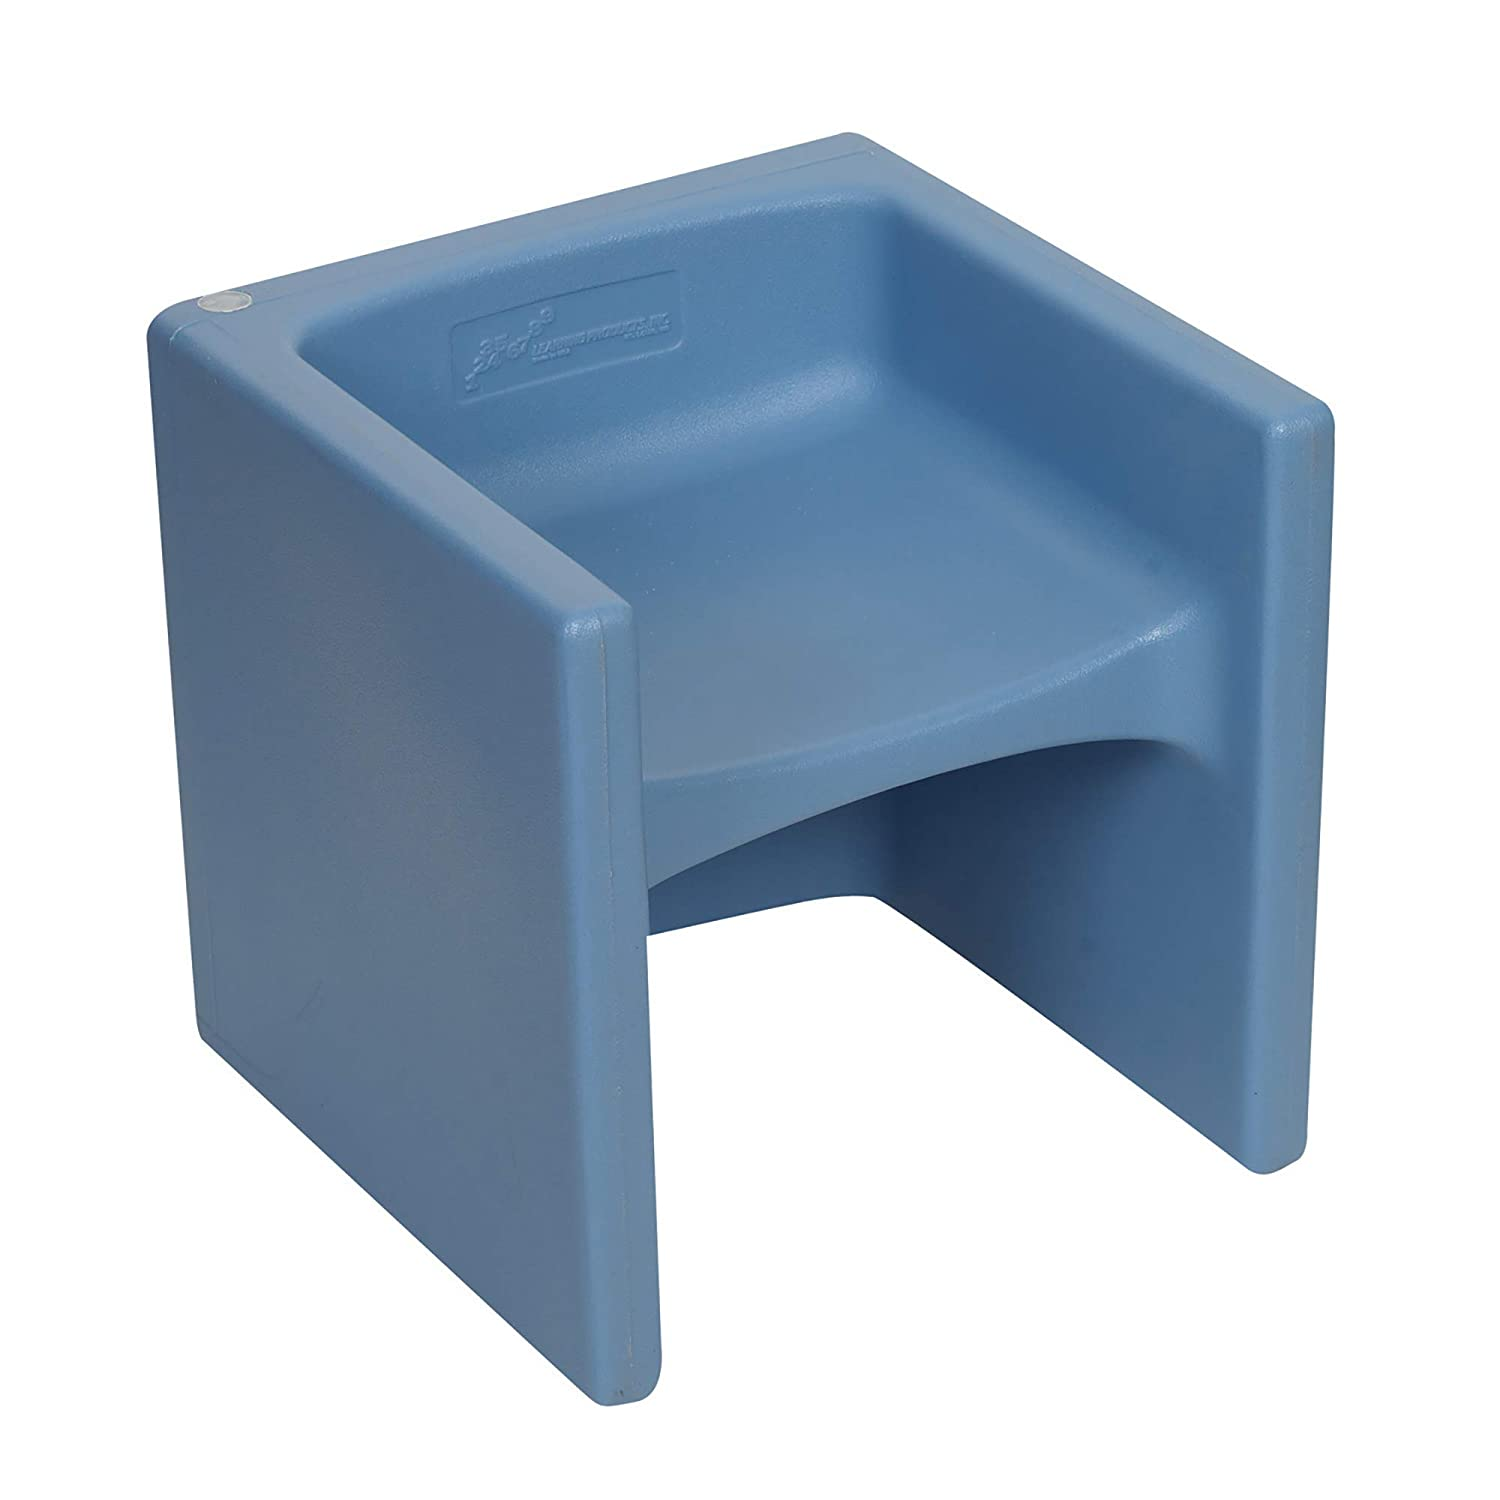 Children's Factory Cube Chair for Kids, Flexible Seating Classroom Furniture for Daycare/Playroom/Homeschool, Indoor/Outdoor Toddler Chair, Sky Blue